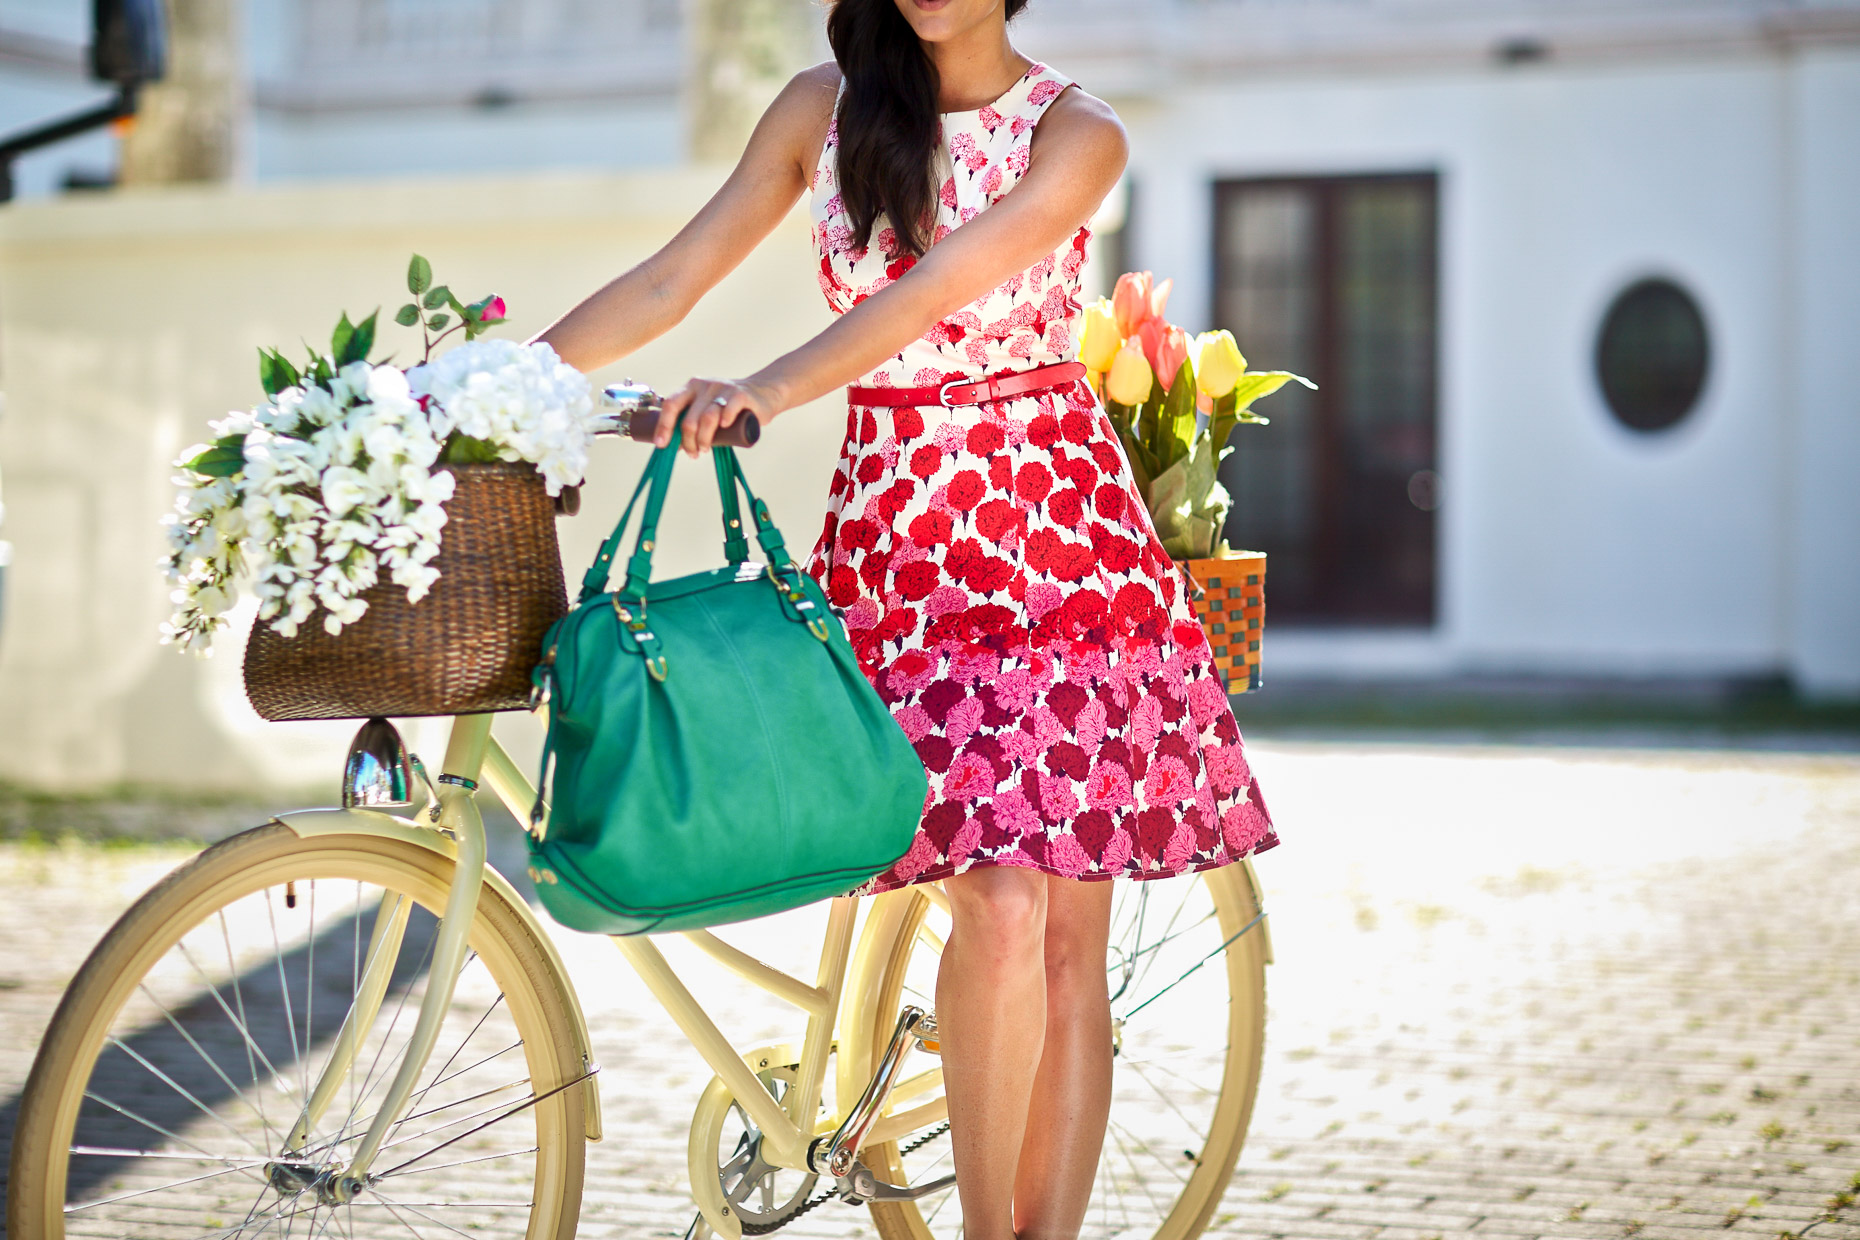 LR-MA_Social_Spring_15_Flower_Dress_Bike_1143